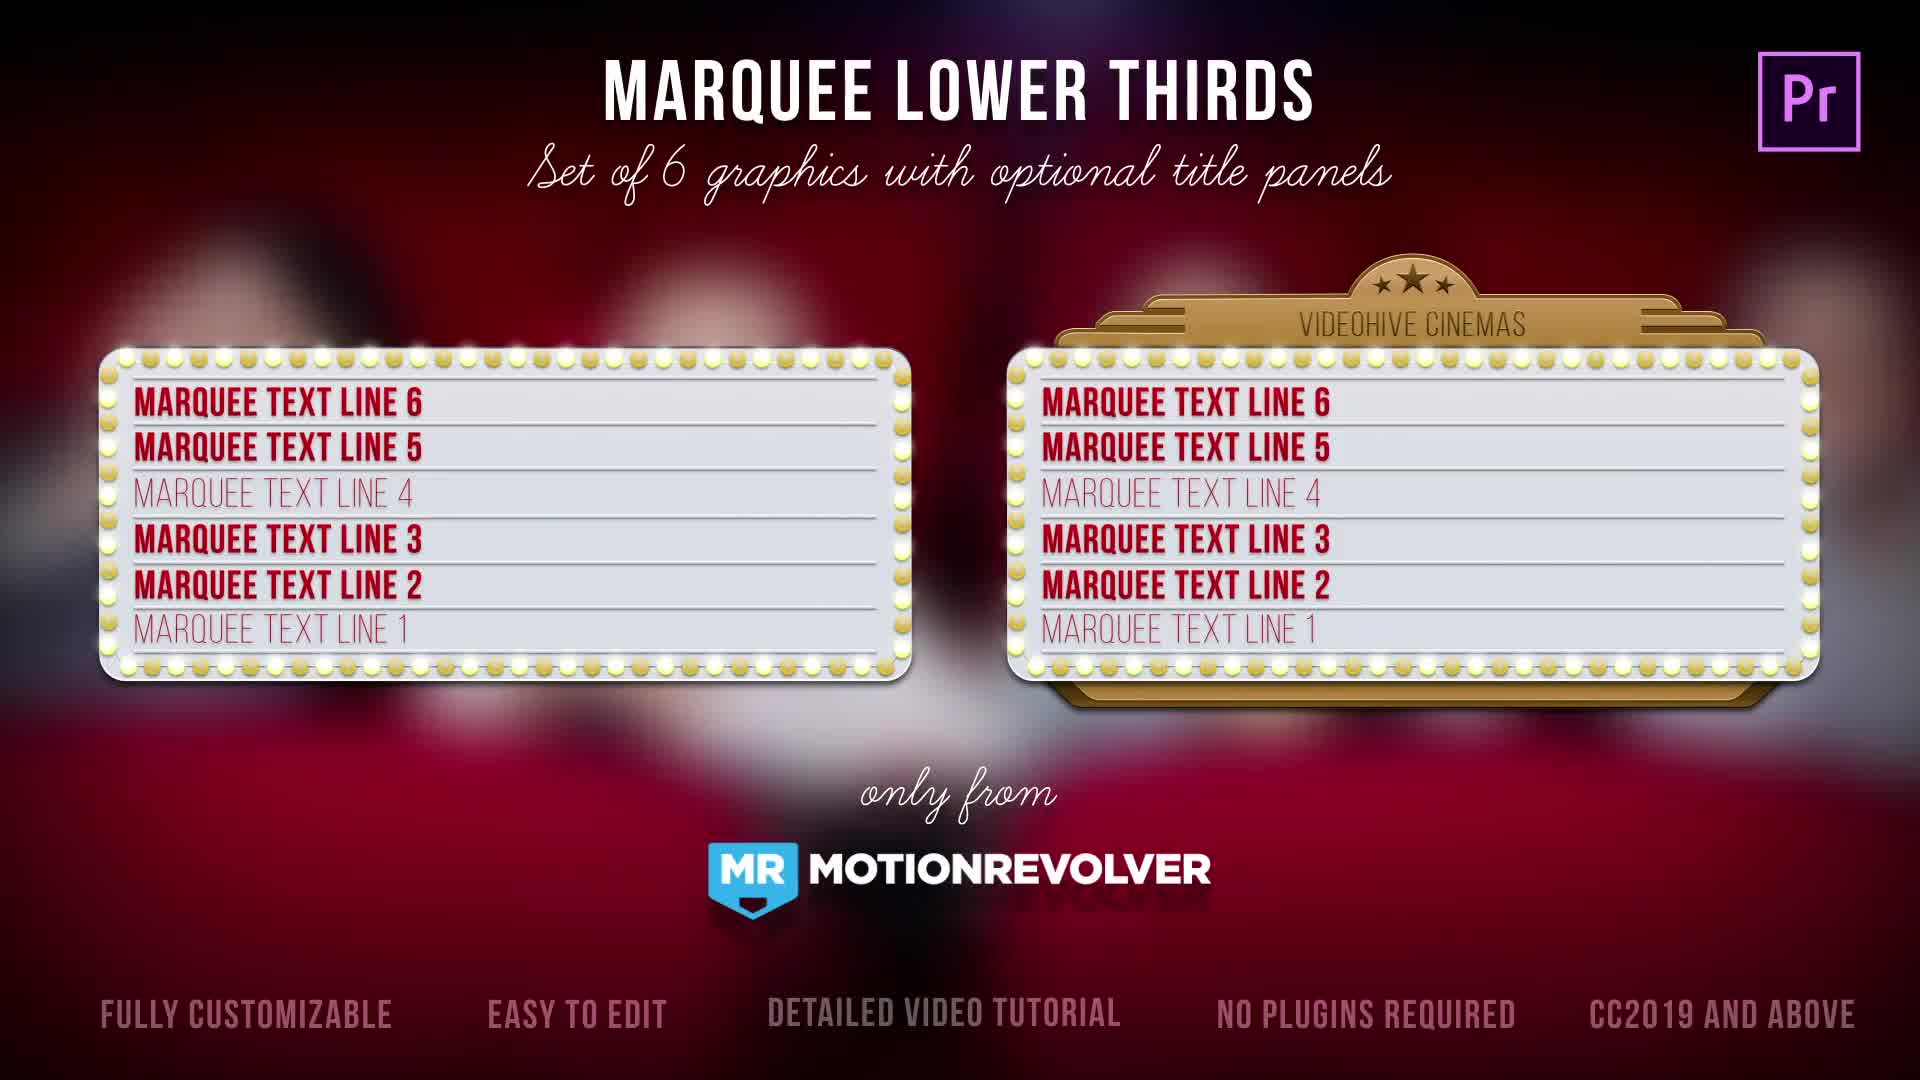 Marquee Lights Titles & Lower Thirds | MOGRT for Premiere Pro Videohive 24552539 Premiere Pro Image 9